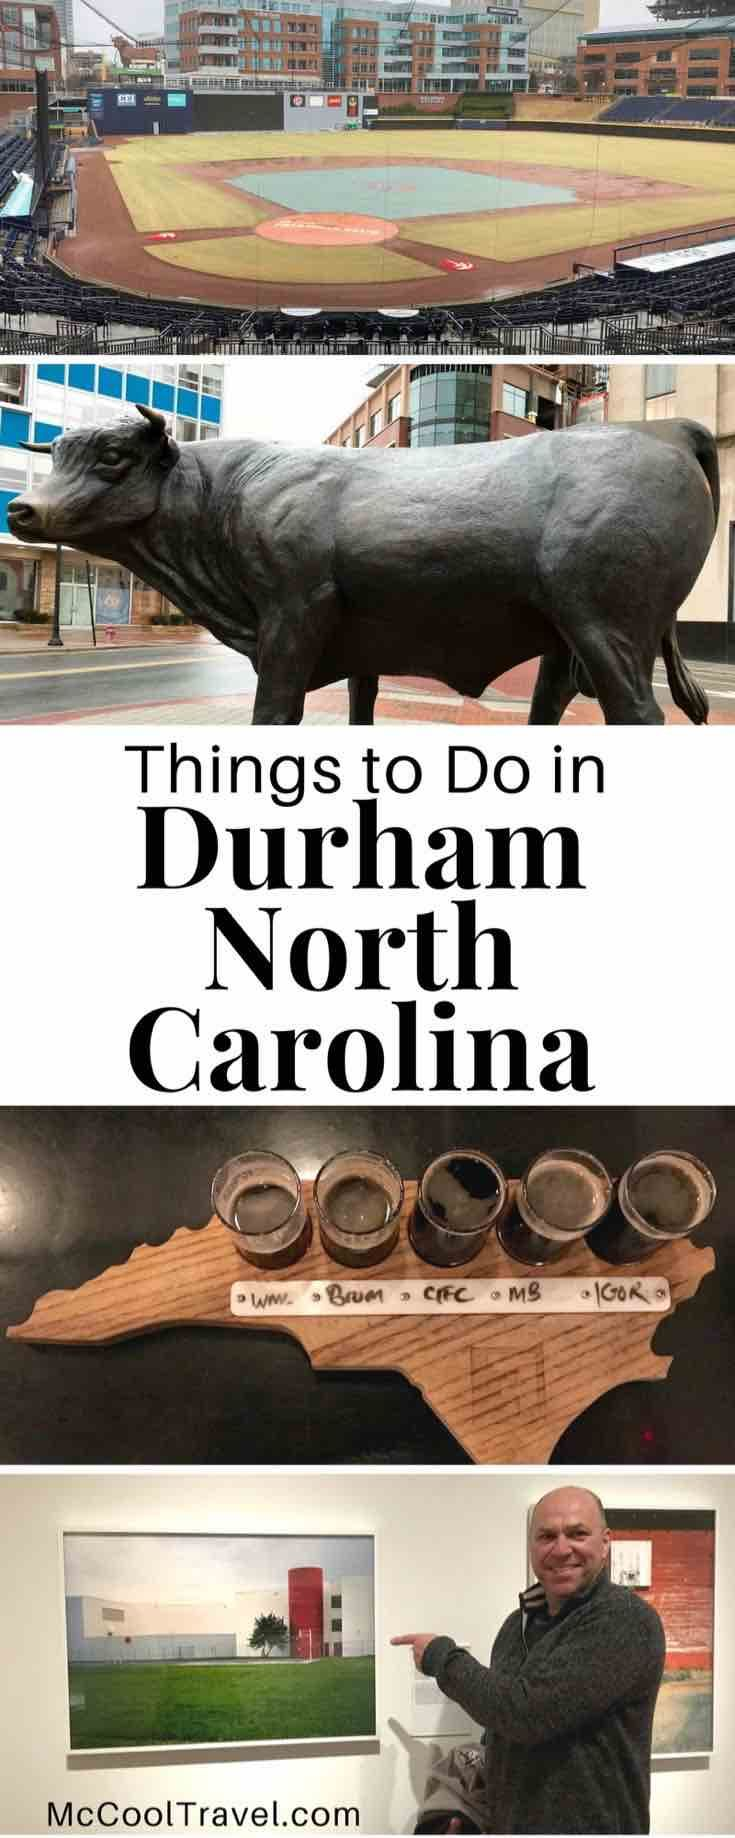 Durham North Carolina USA. Things to do in Durham North Carolina include a vibrant scene of arts, local cuisine and craft beverages, historic preservation and recognition.